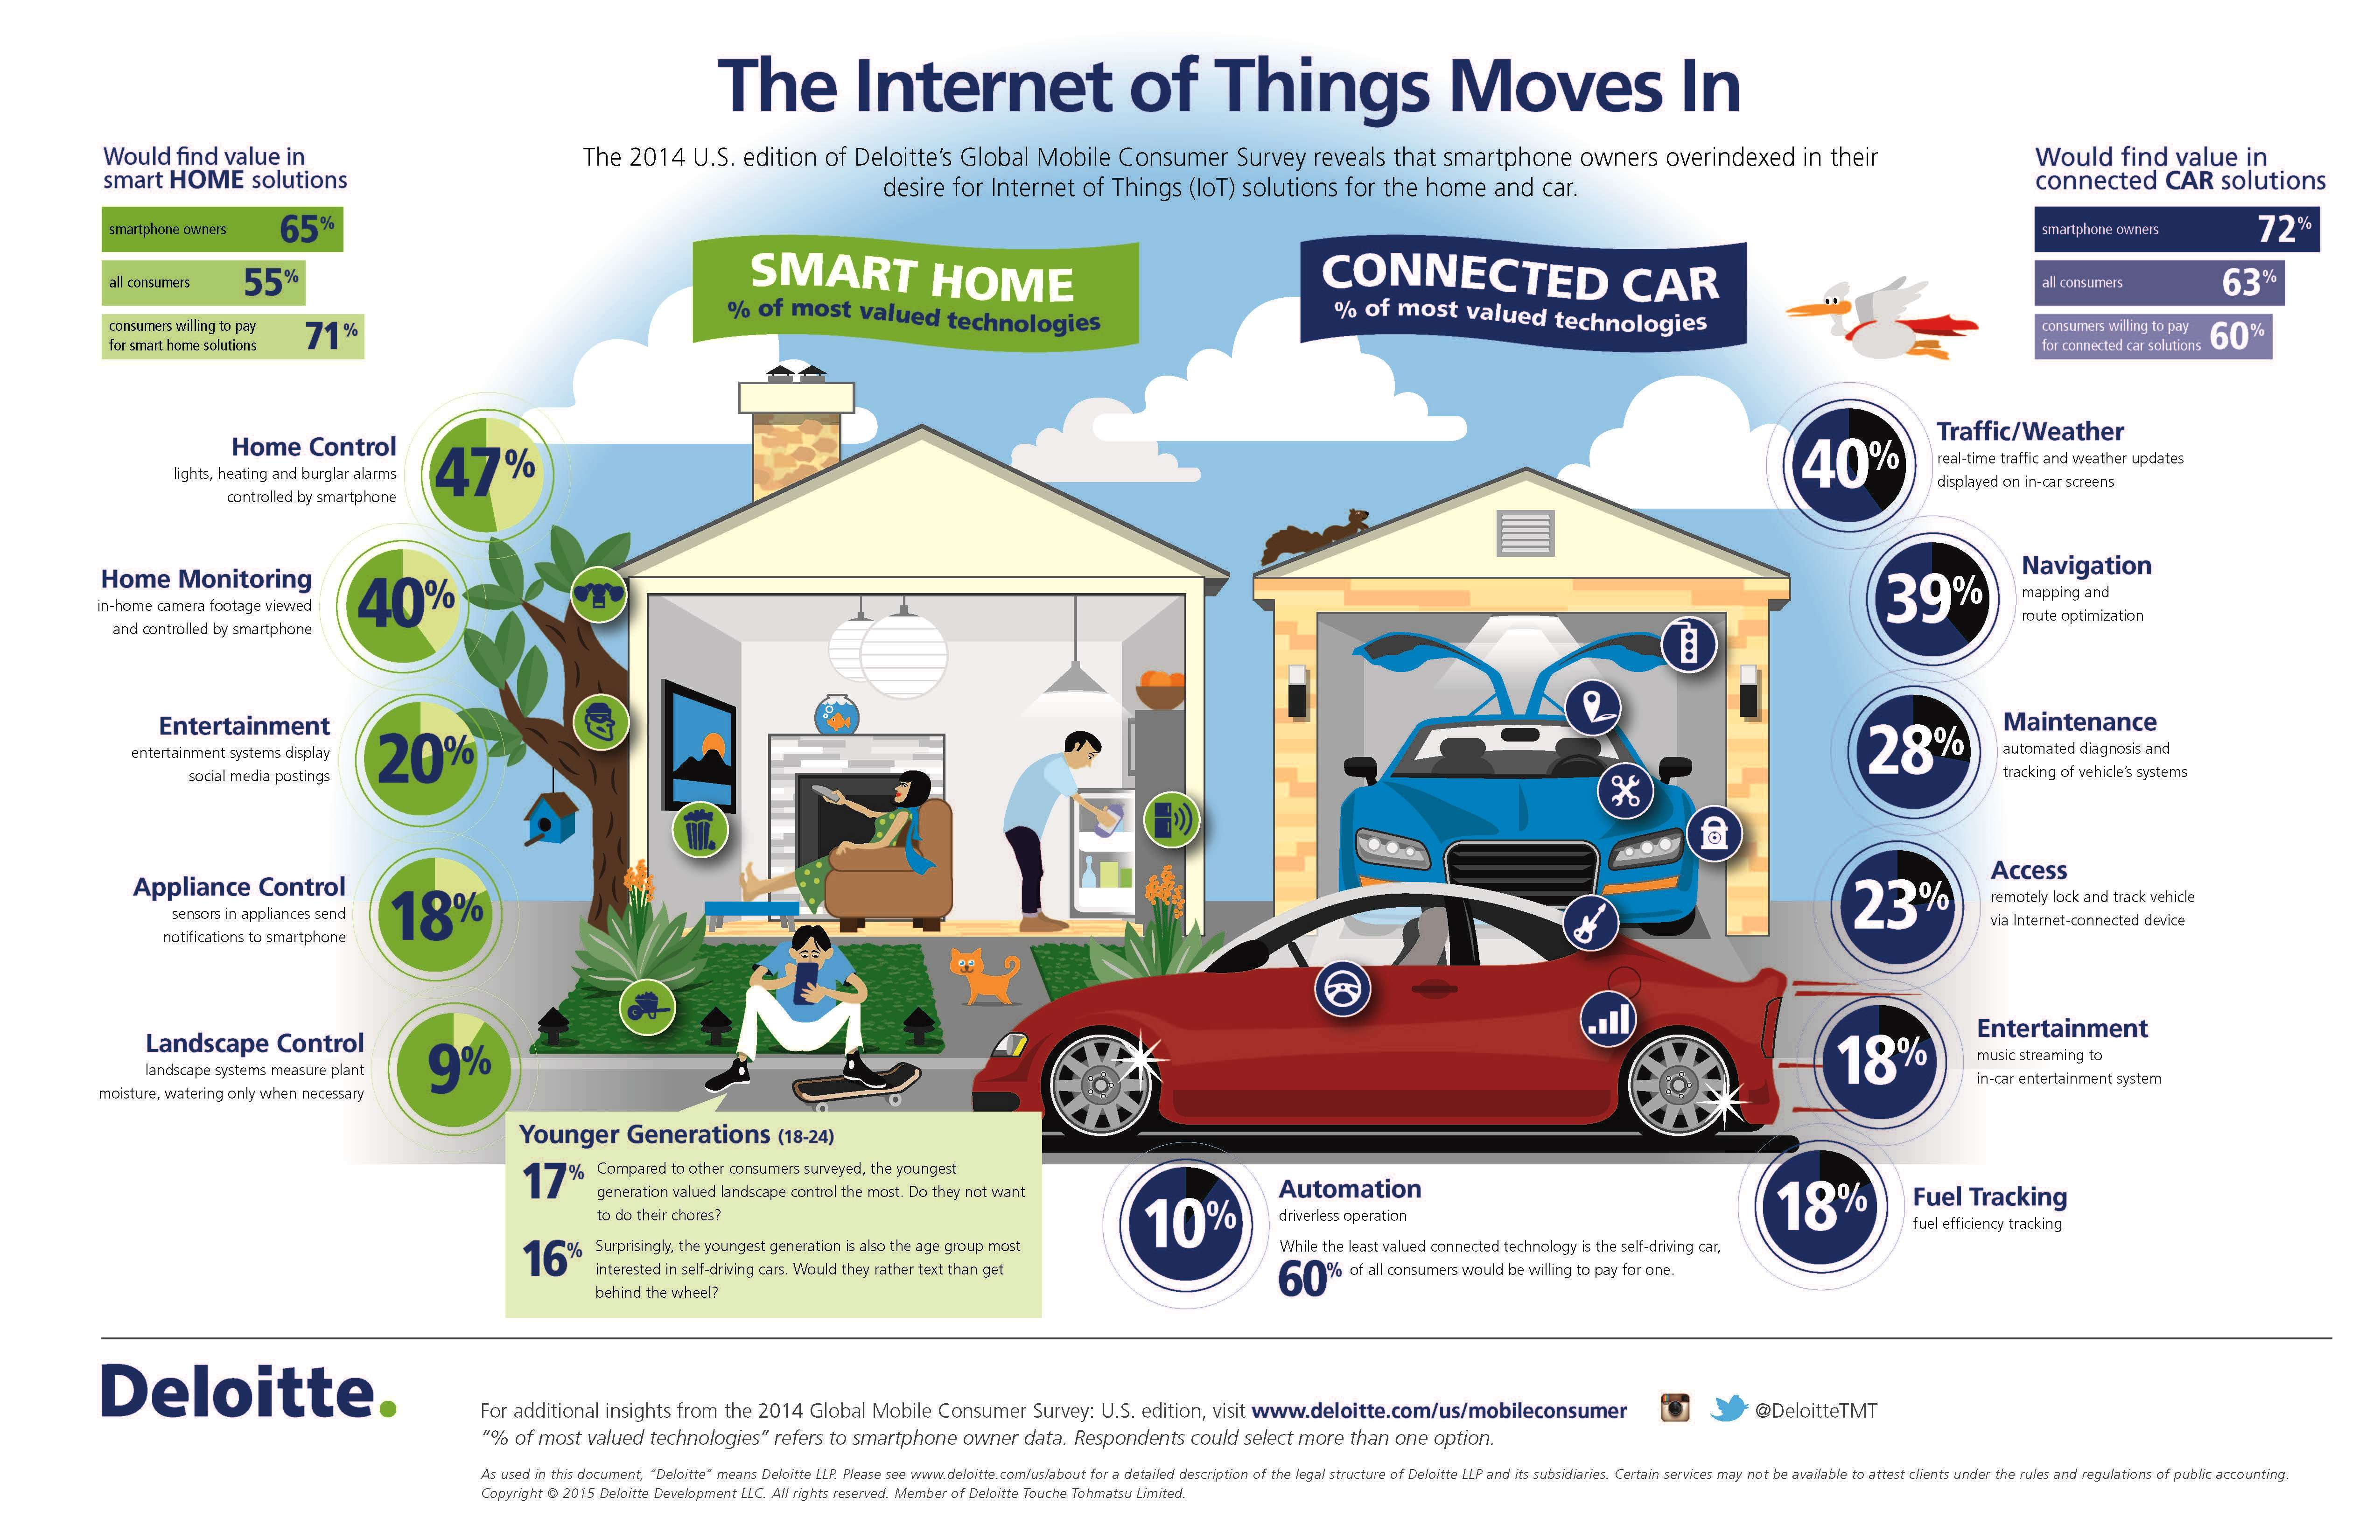 us-tmt-Internet-of-things-GMCS_Infographic_v2-2015